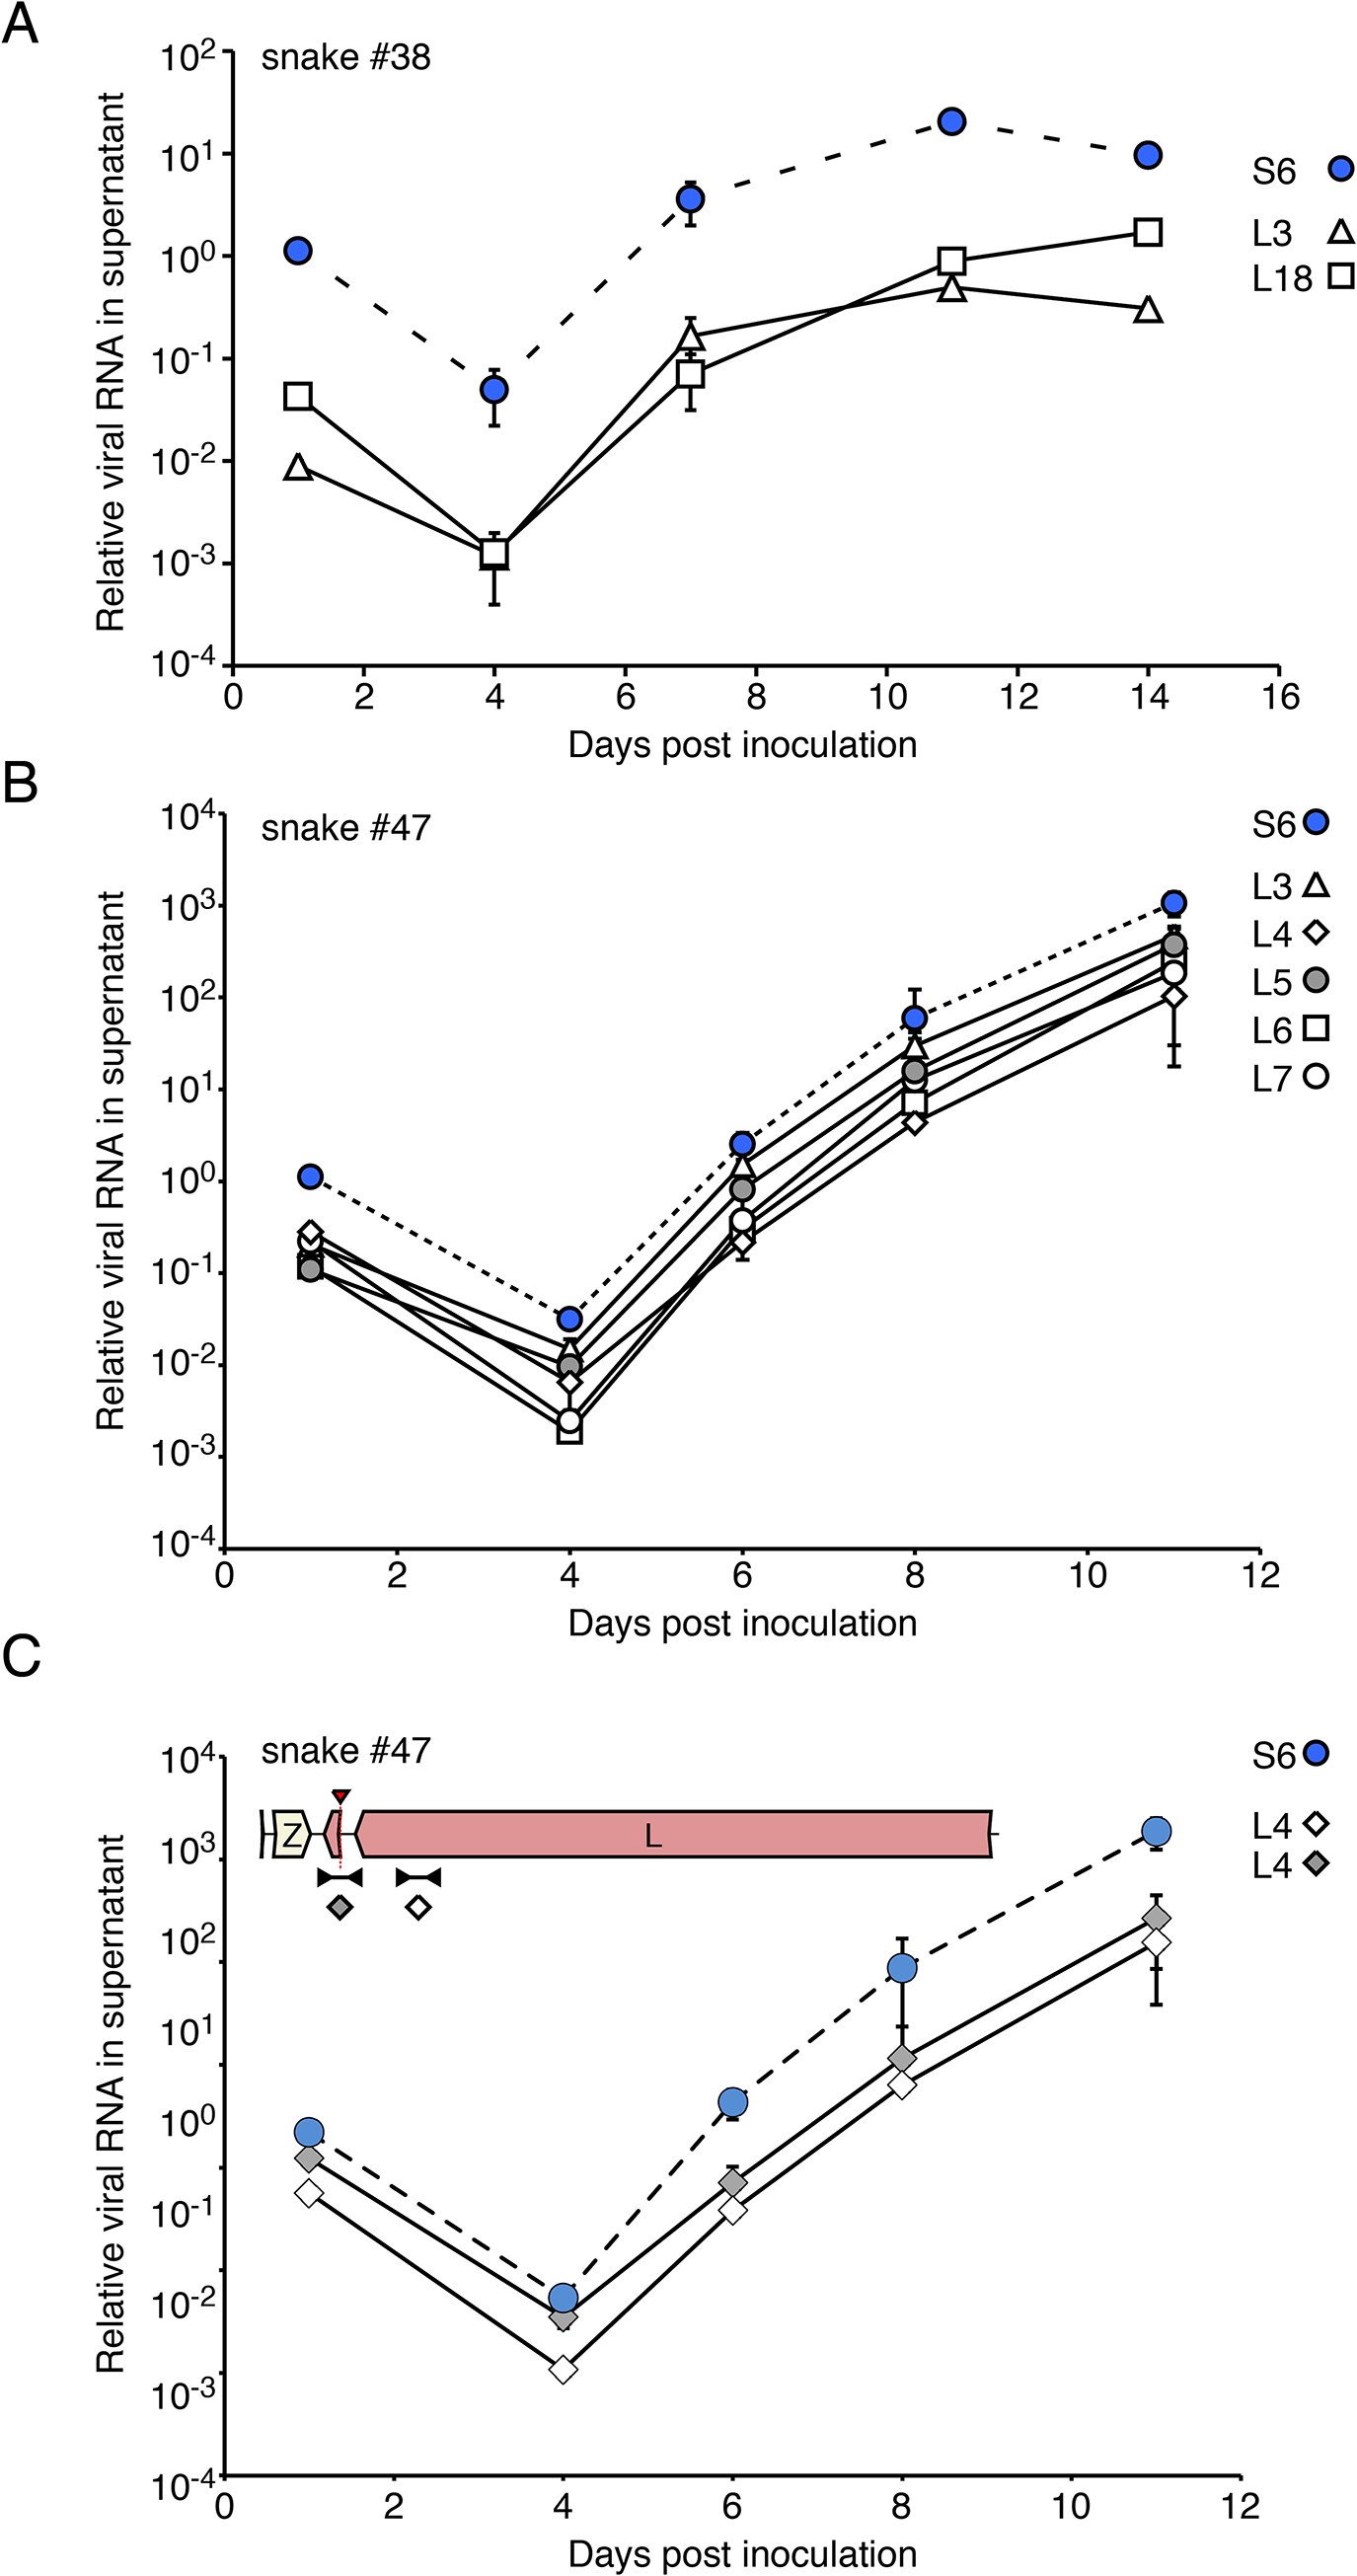 Virus populations replicate as stable ensembles in culture: (A) Liver homogenate from snake #38 was applied to cultures of JK cells and replication was monitored by measuring supernatant viral RNA levels using qRT-PCR and genotype-specific primers.